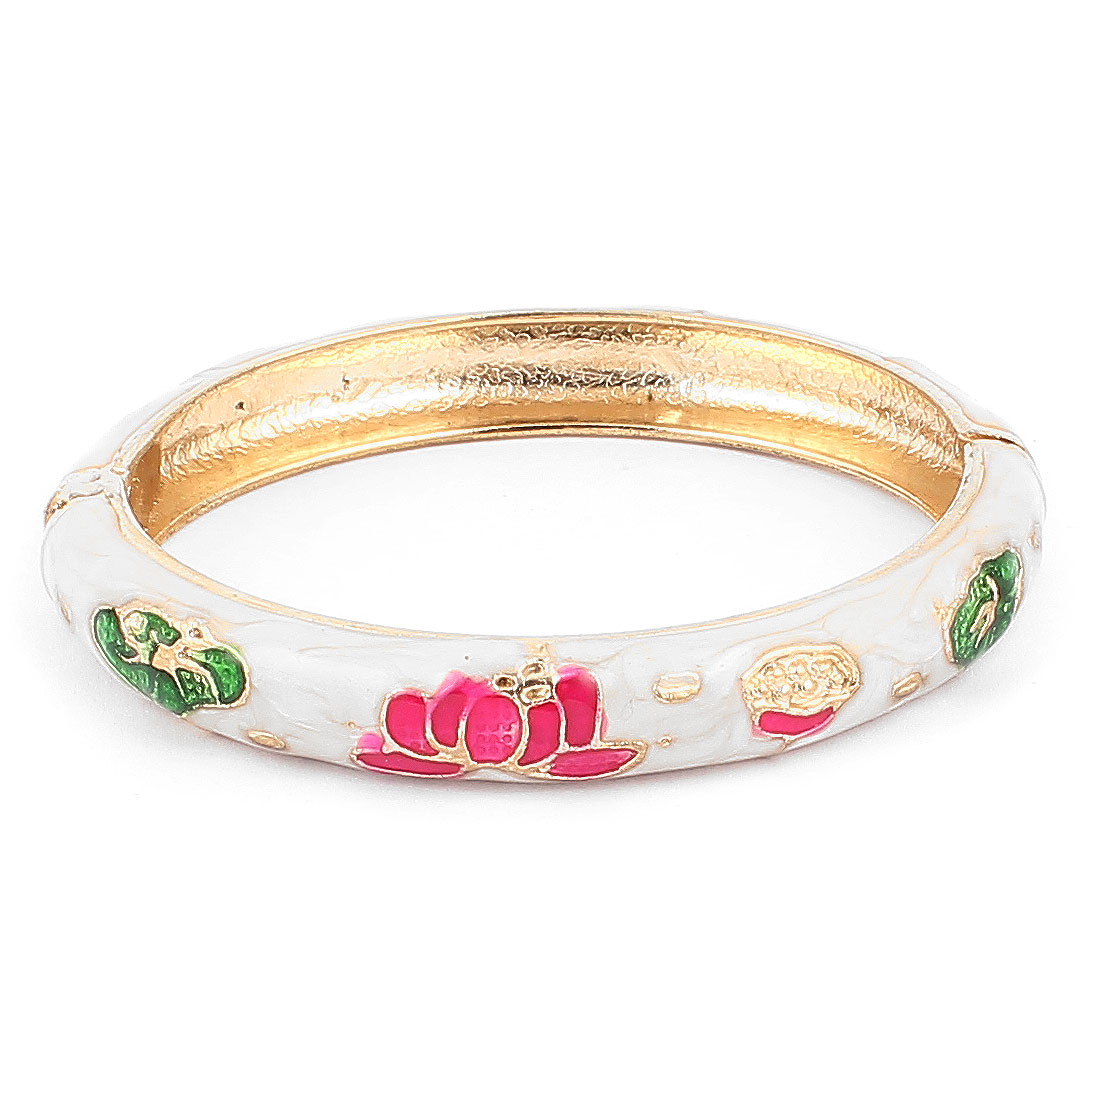 Woman Lady Spring Hinged Round Cuff Flower Pattern Enamel Bracelet Bangle White